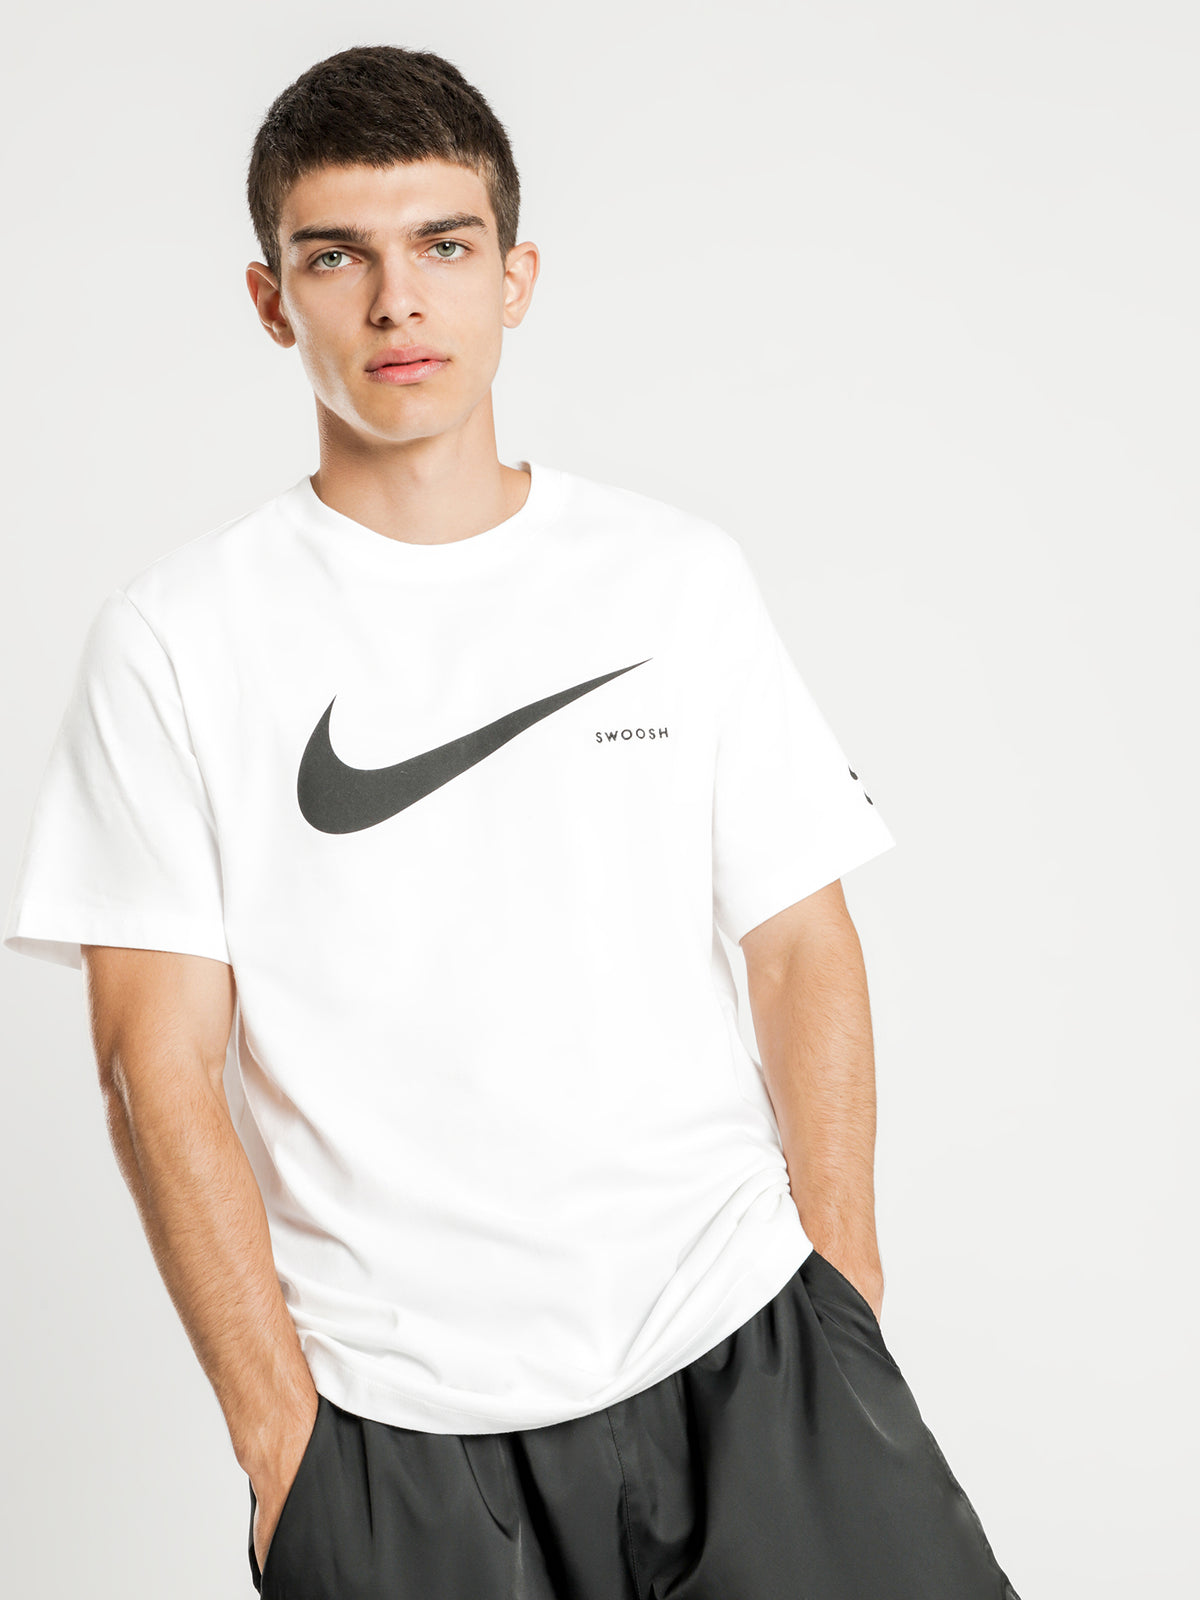 NSW Swoosh Short Sleeve T-Shirt in White